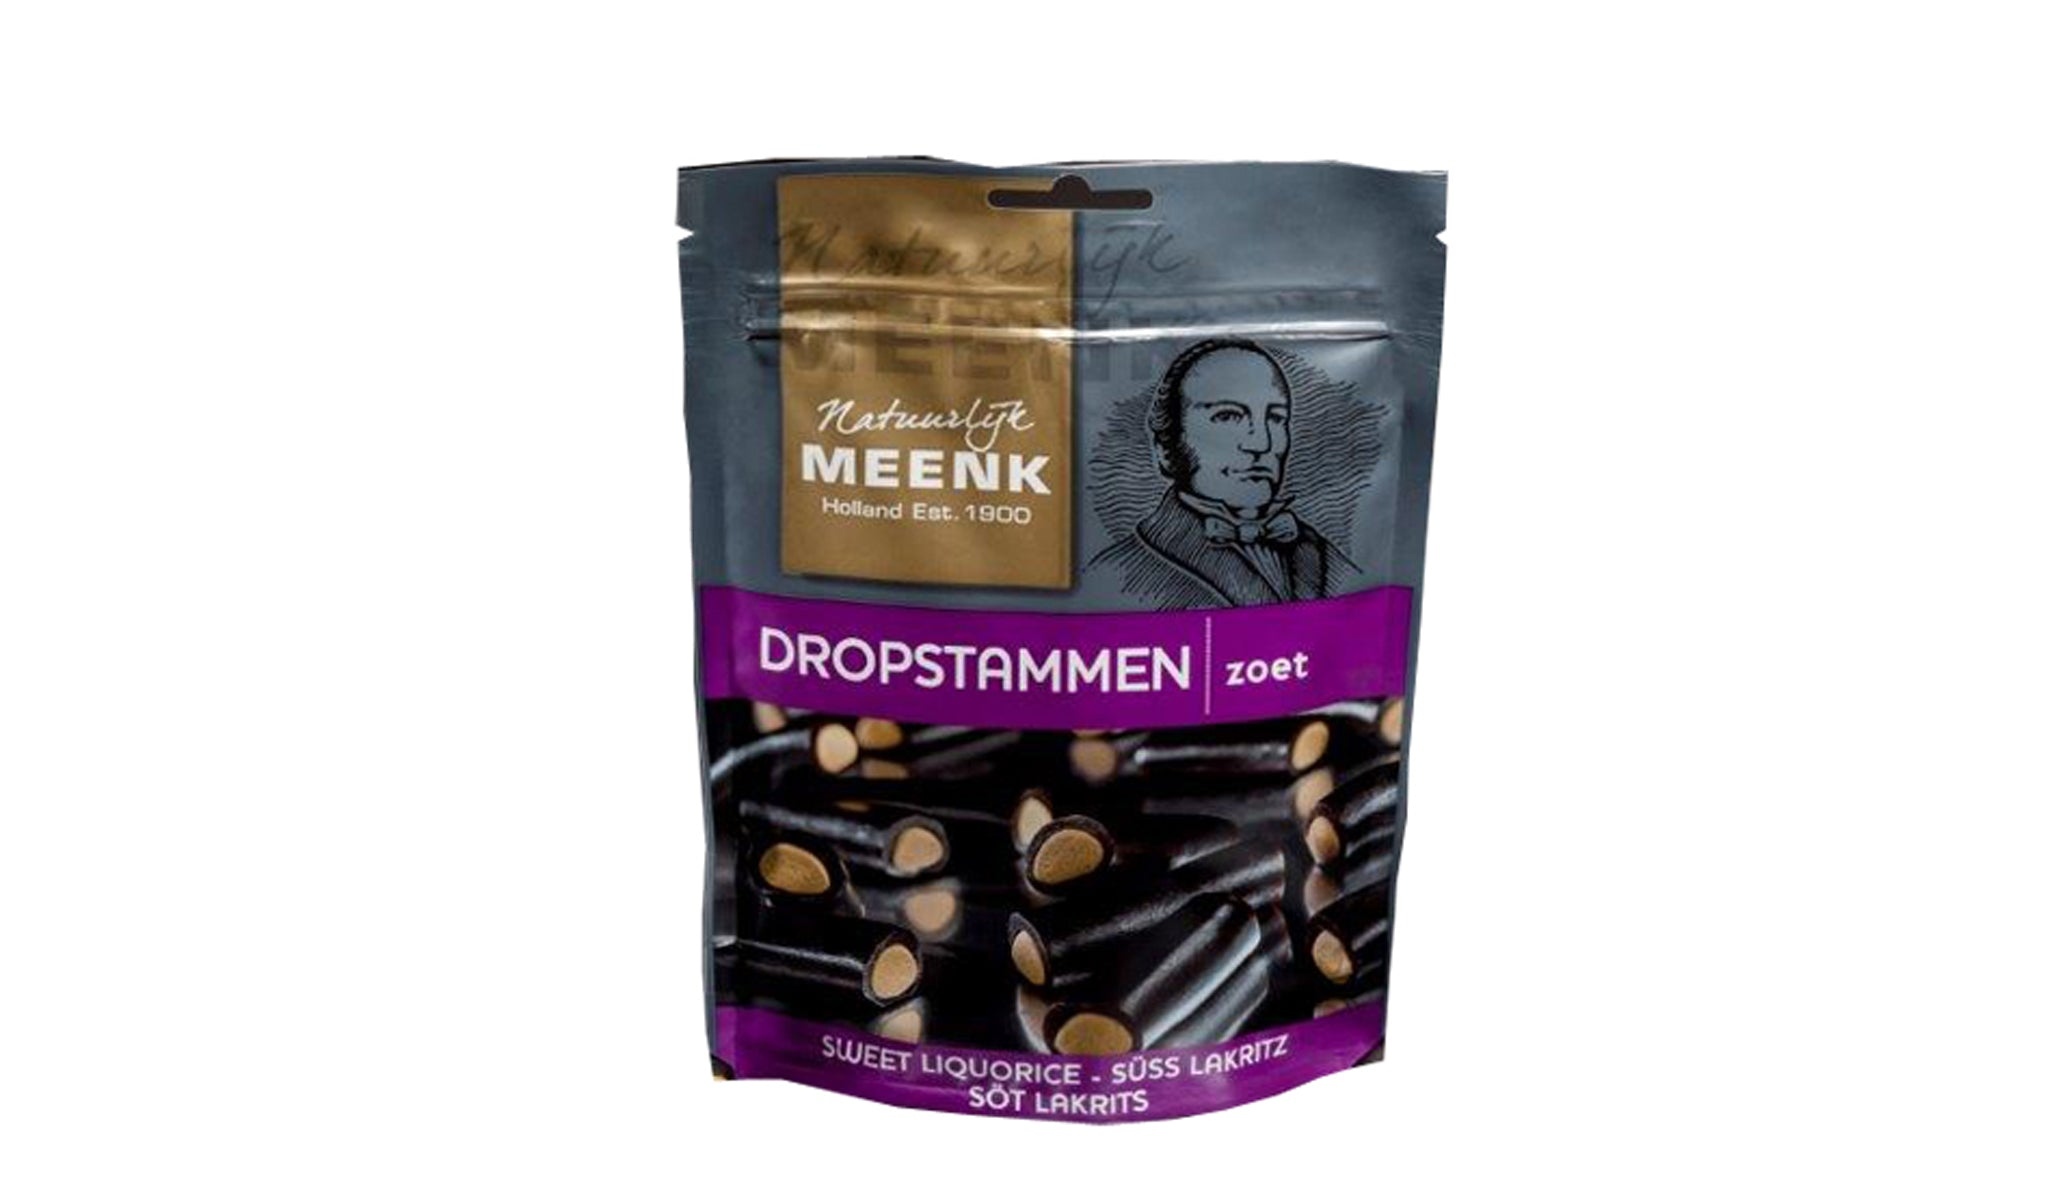 Dropstammen Sweet Licorice 225g